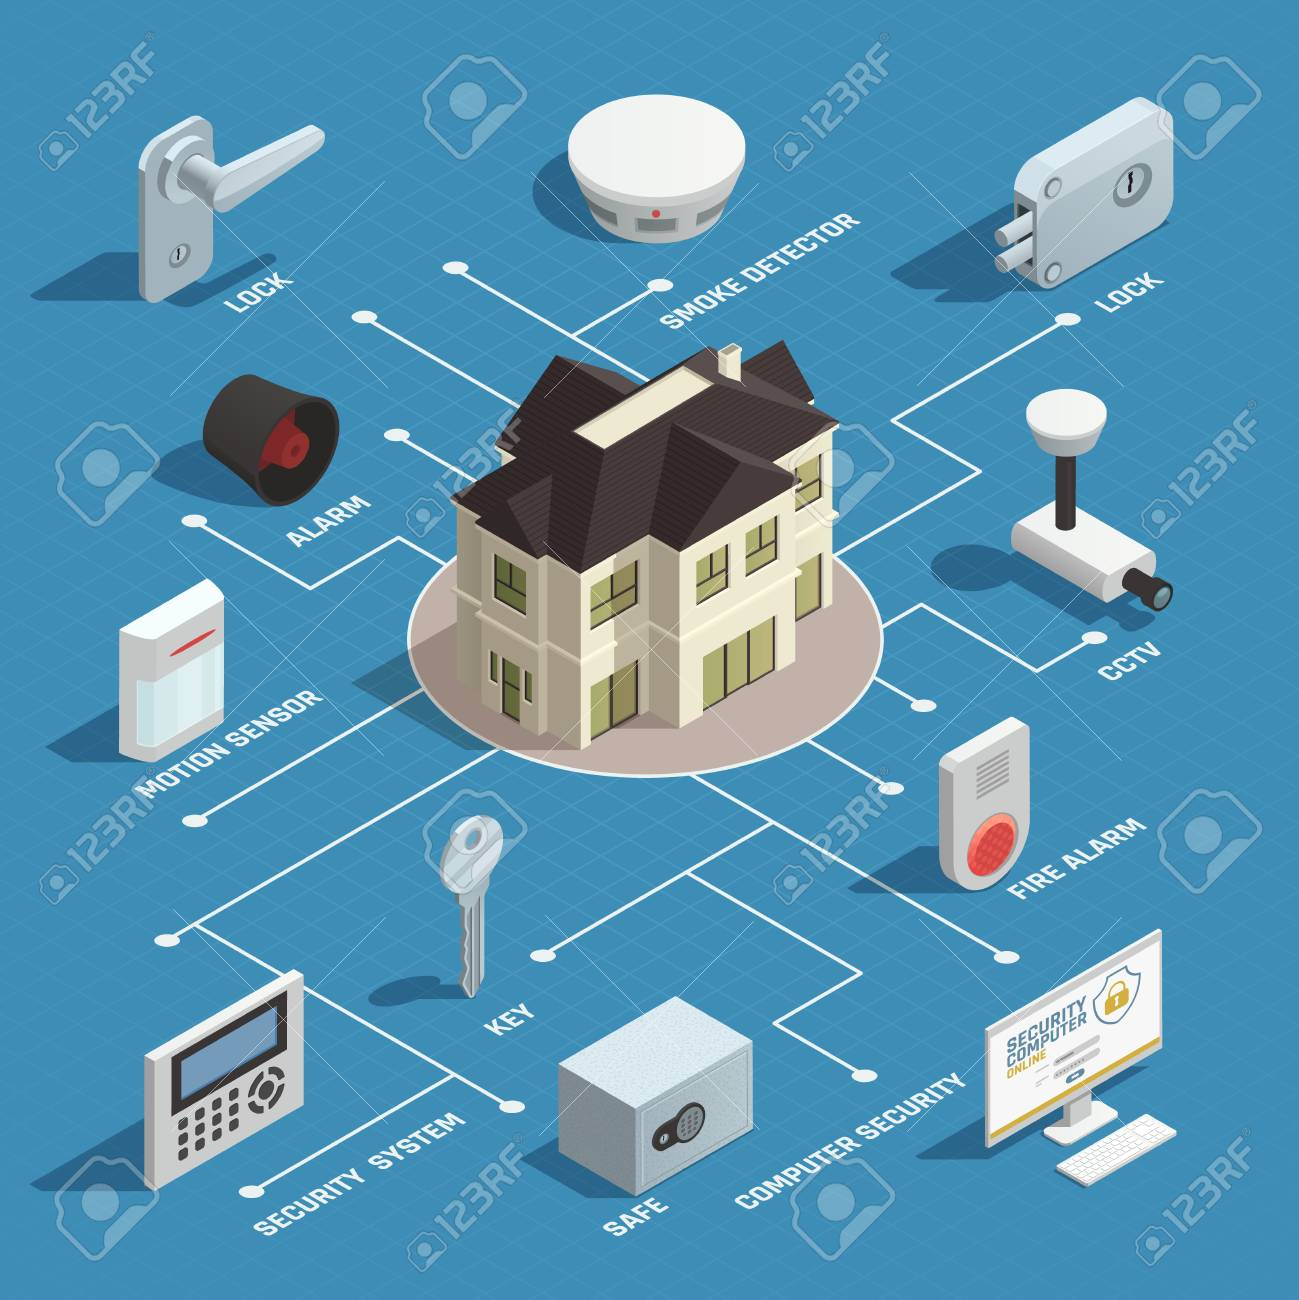 Cctv Diagram Home Network Secure Trusted Wiring Connection Security Isometric Flowchart With Smoke Detector Motion Surveillance Camera Diagrams